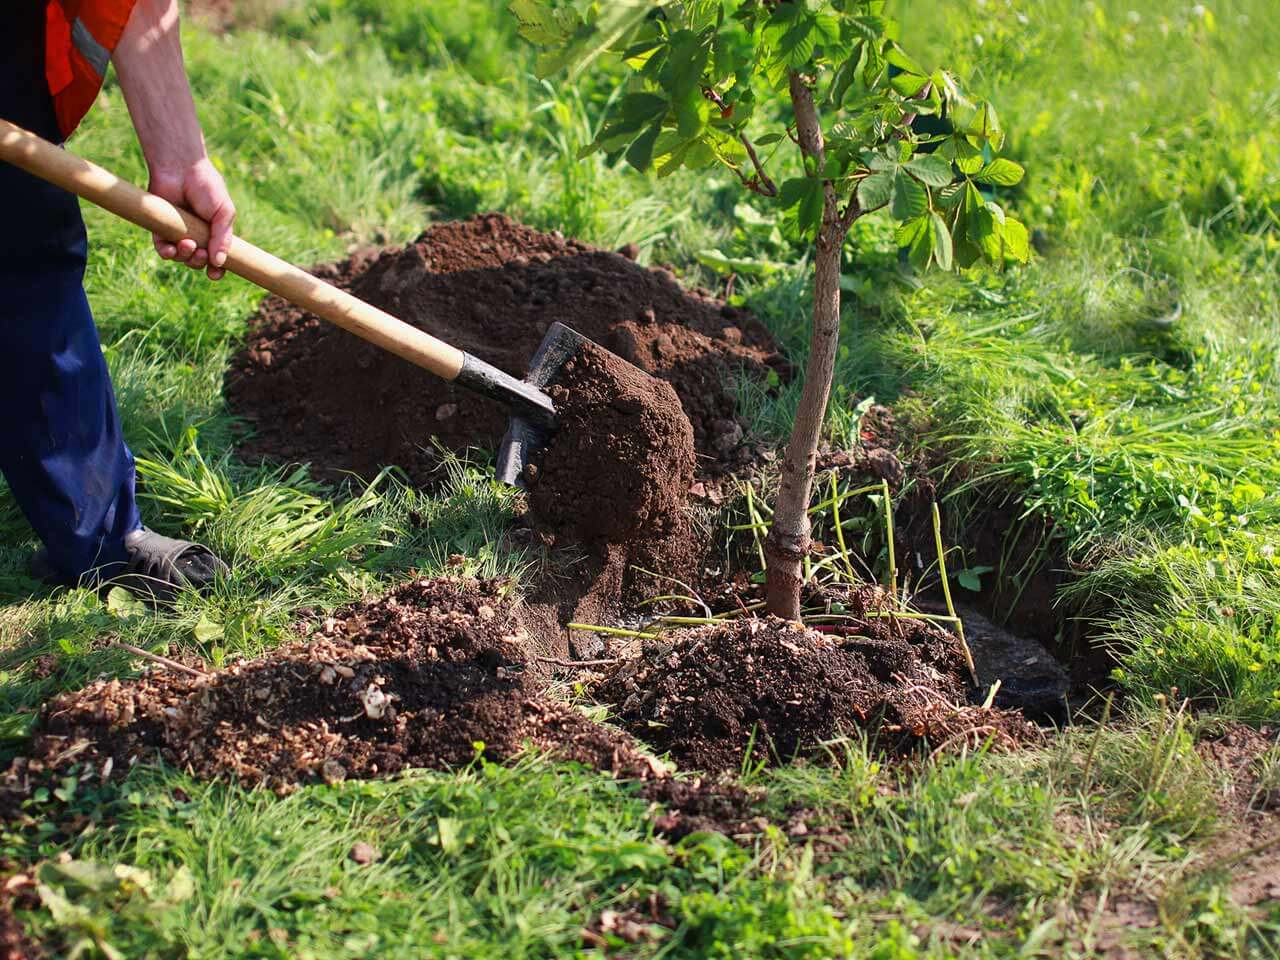 Tree Planting-Fresno Tree Trimming and Stump Grinding Services-We Offer Tree Trimming Services, Tree Removal, Tree Pruning, Tree Cutting, Residential and Commercial Tree Trimming Services, Storm Damage, Emergency Tree Removal, Land Clearing, Tree Companies, Tree Care Service, Stump Grinding, and we're the Best Tree Trimming Company Near You Guaranteed!